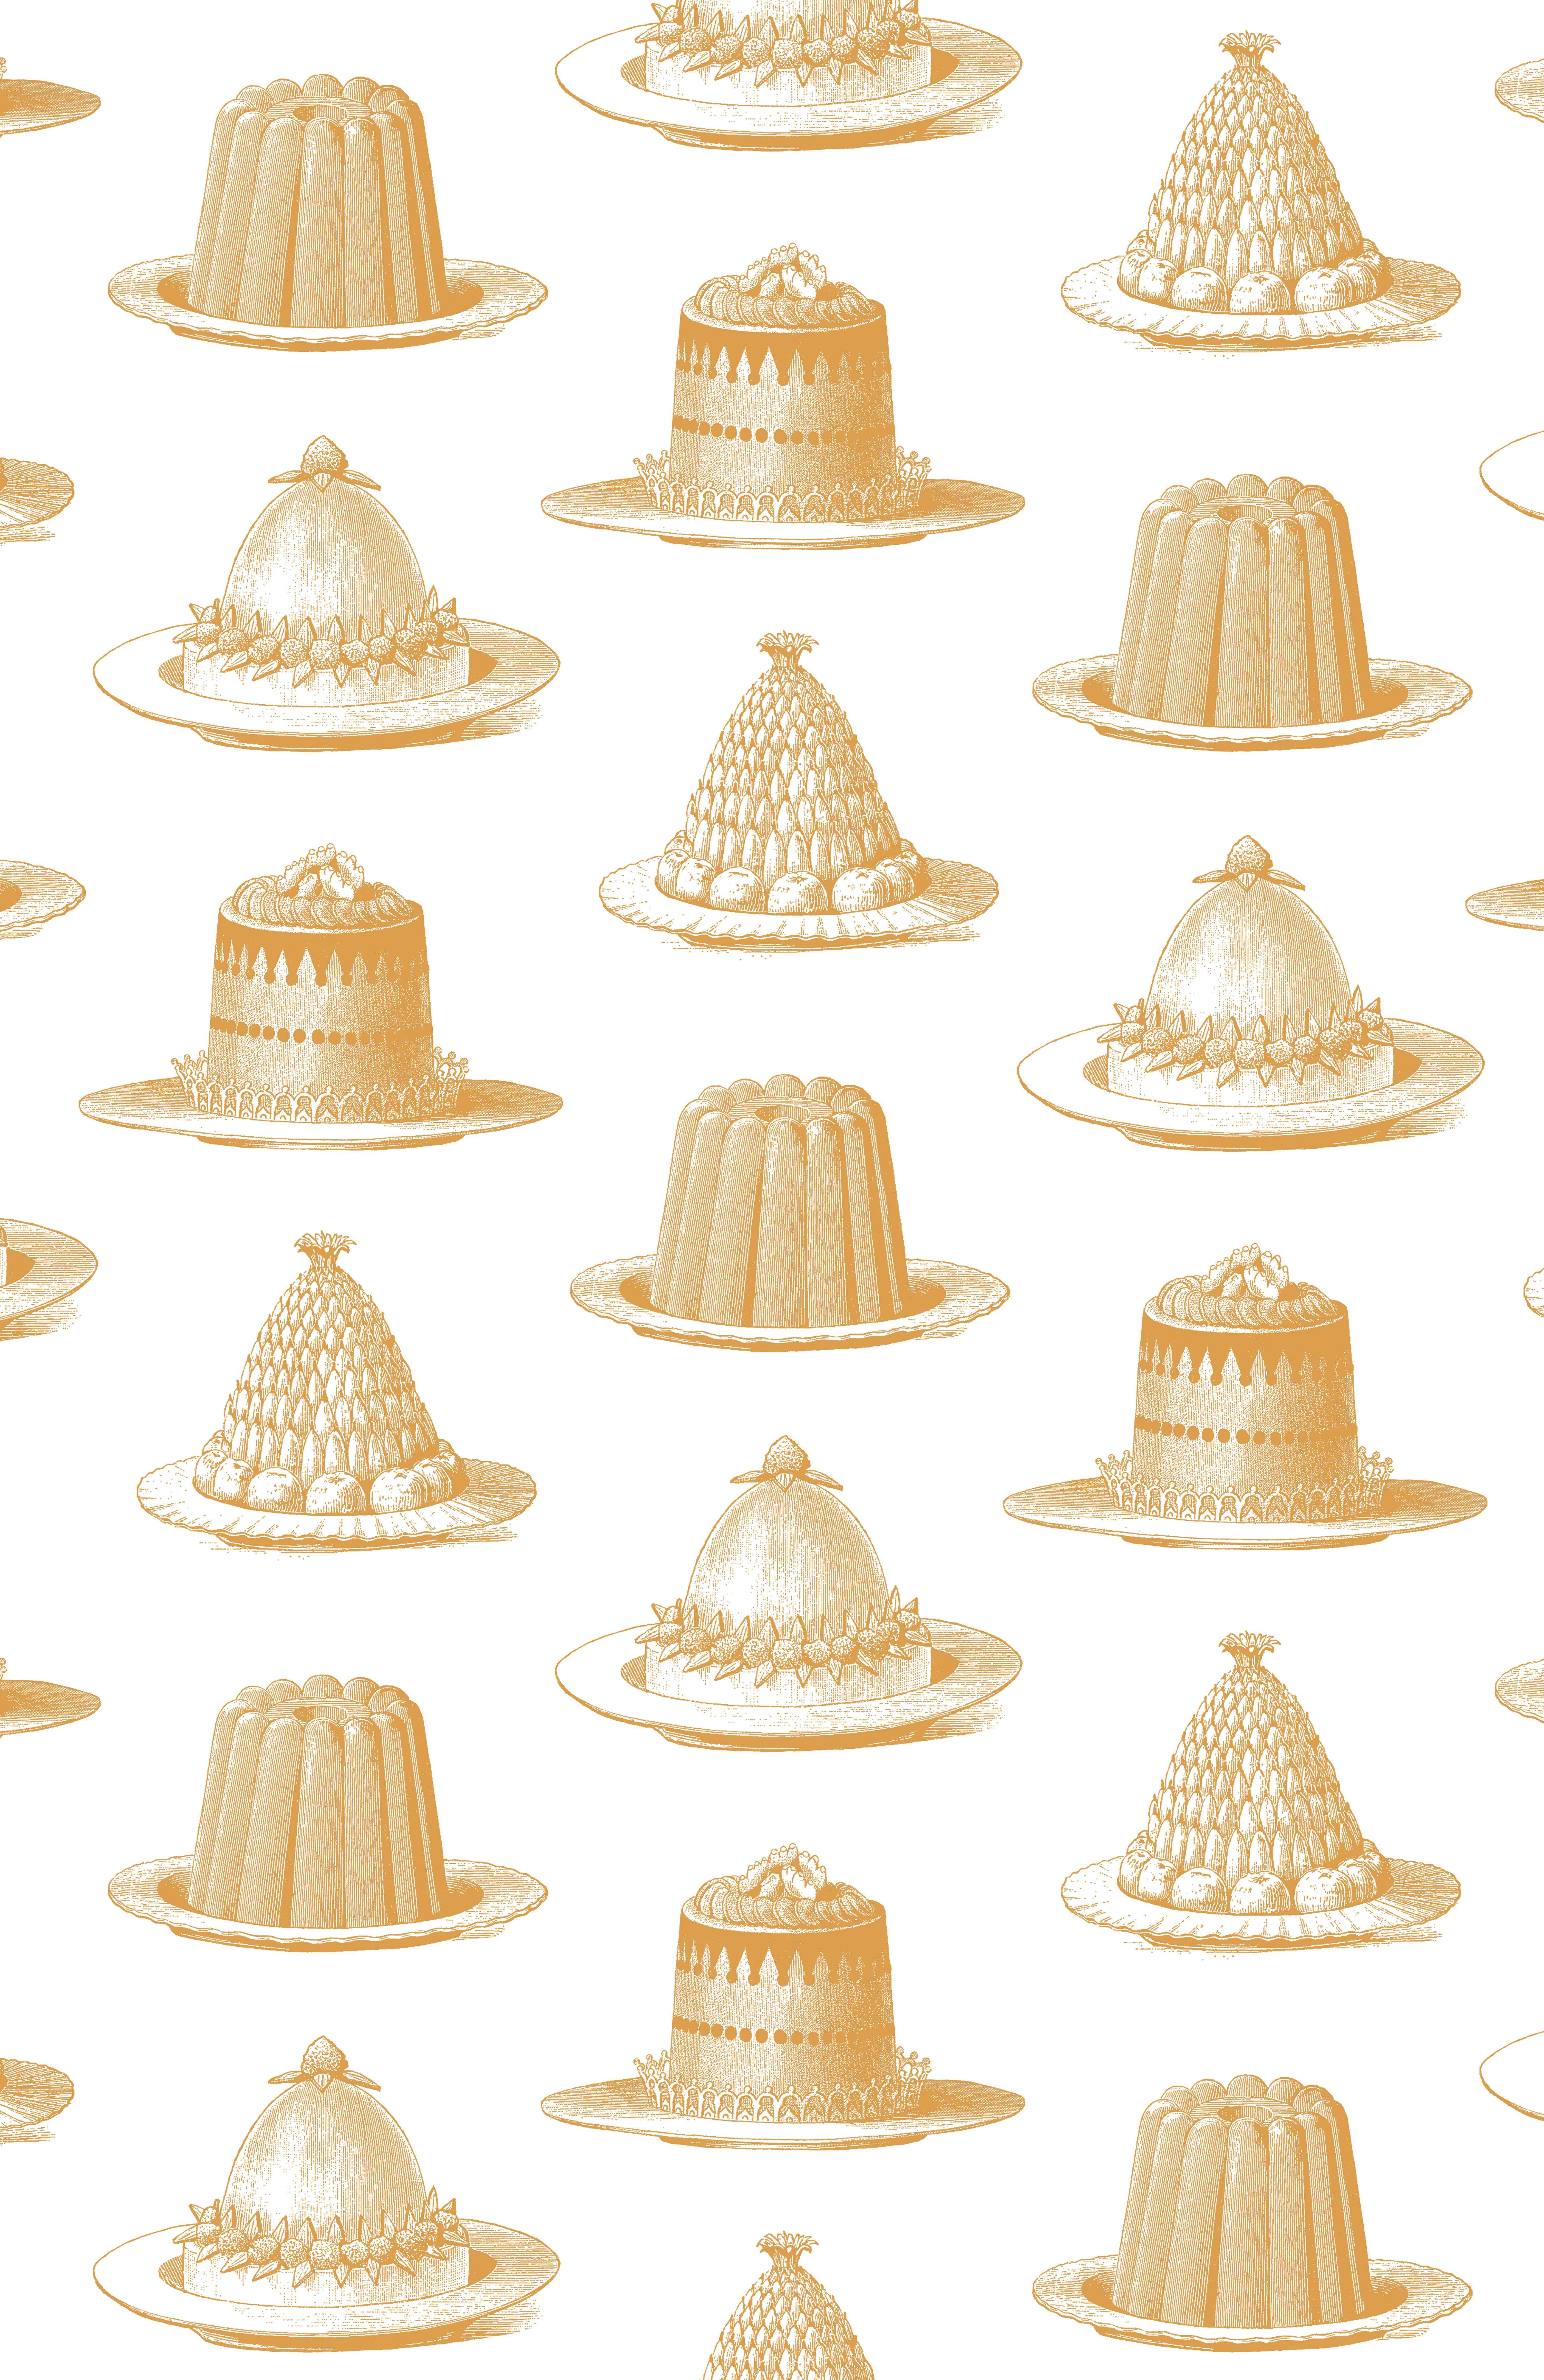 Thornback & Peel Jelly & Cake wallpaper in gold